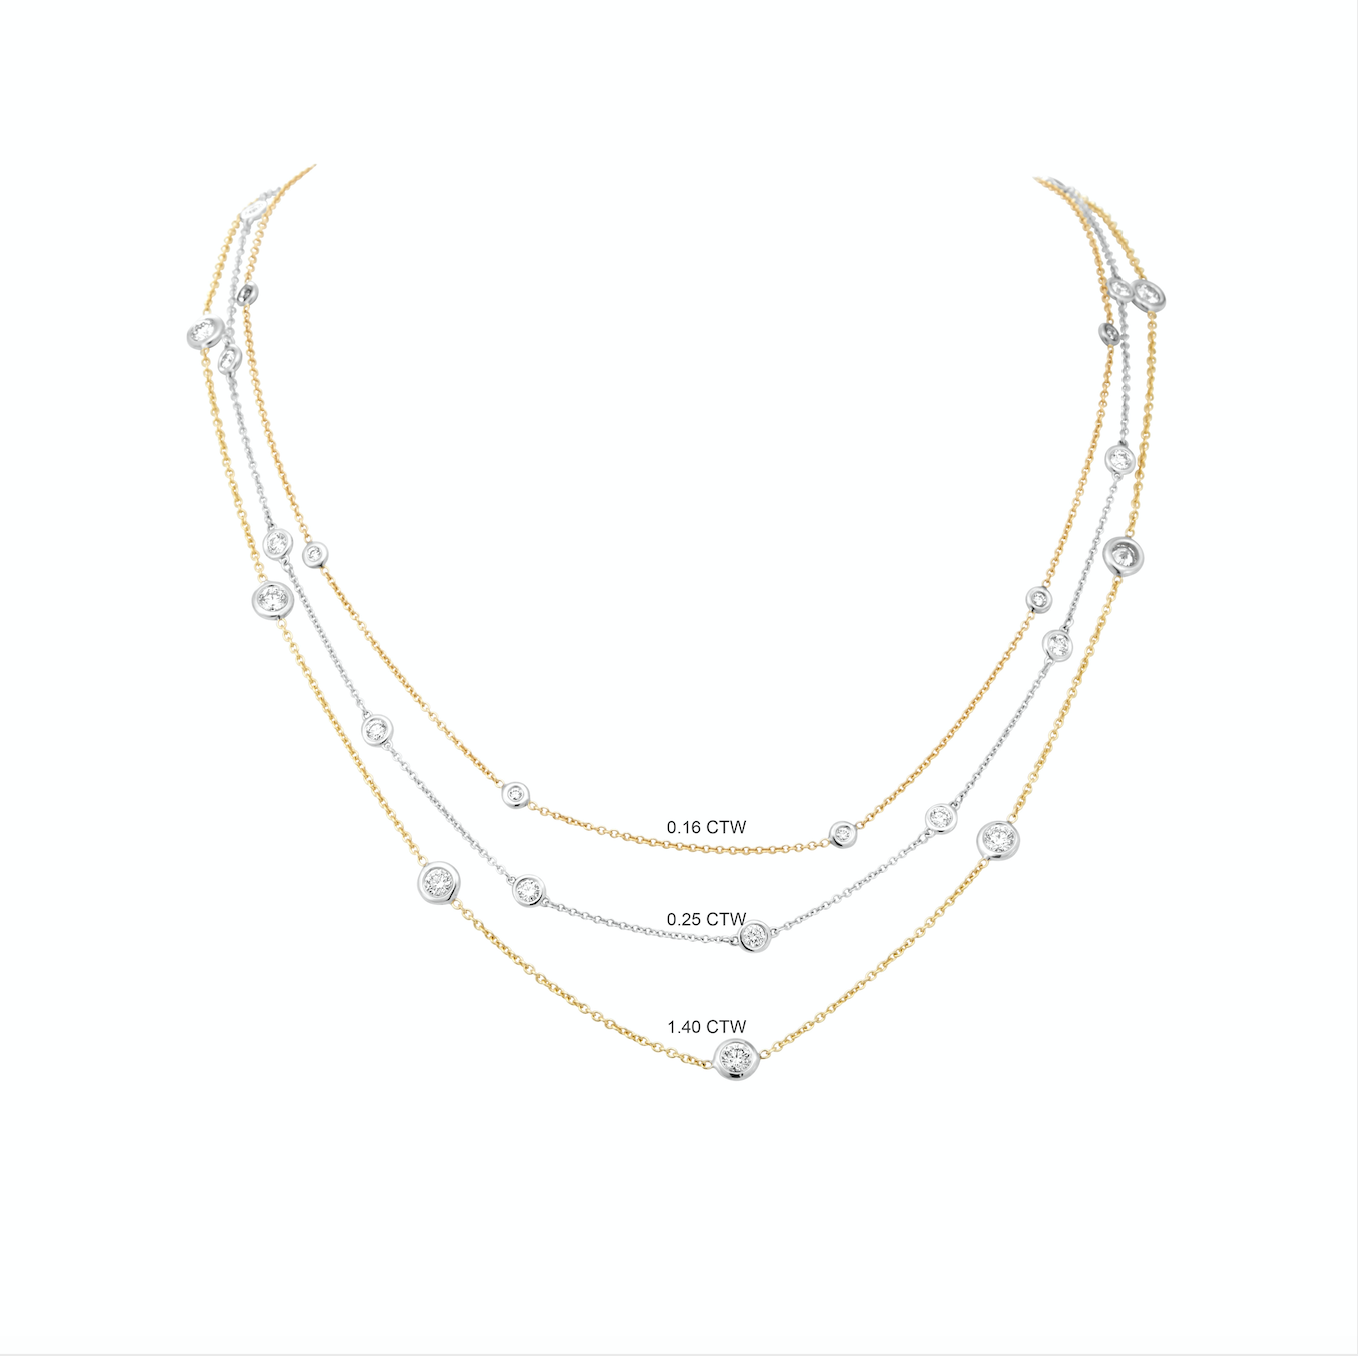 Diamond Station Necklace in 18k yellow and white gold, 1.40ctw